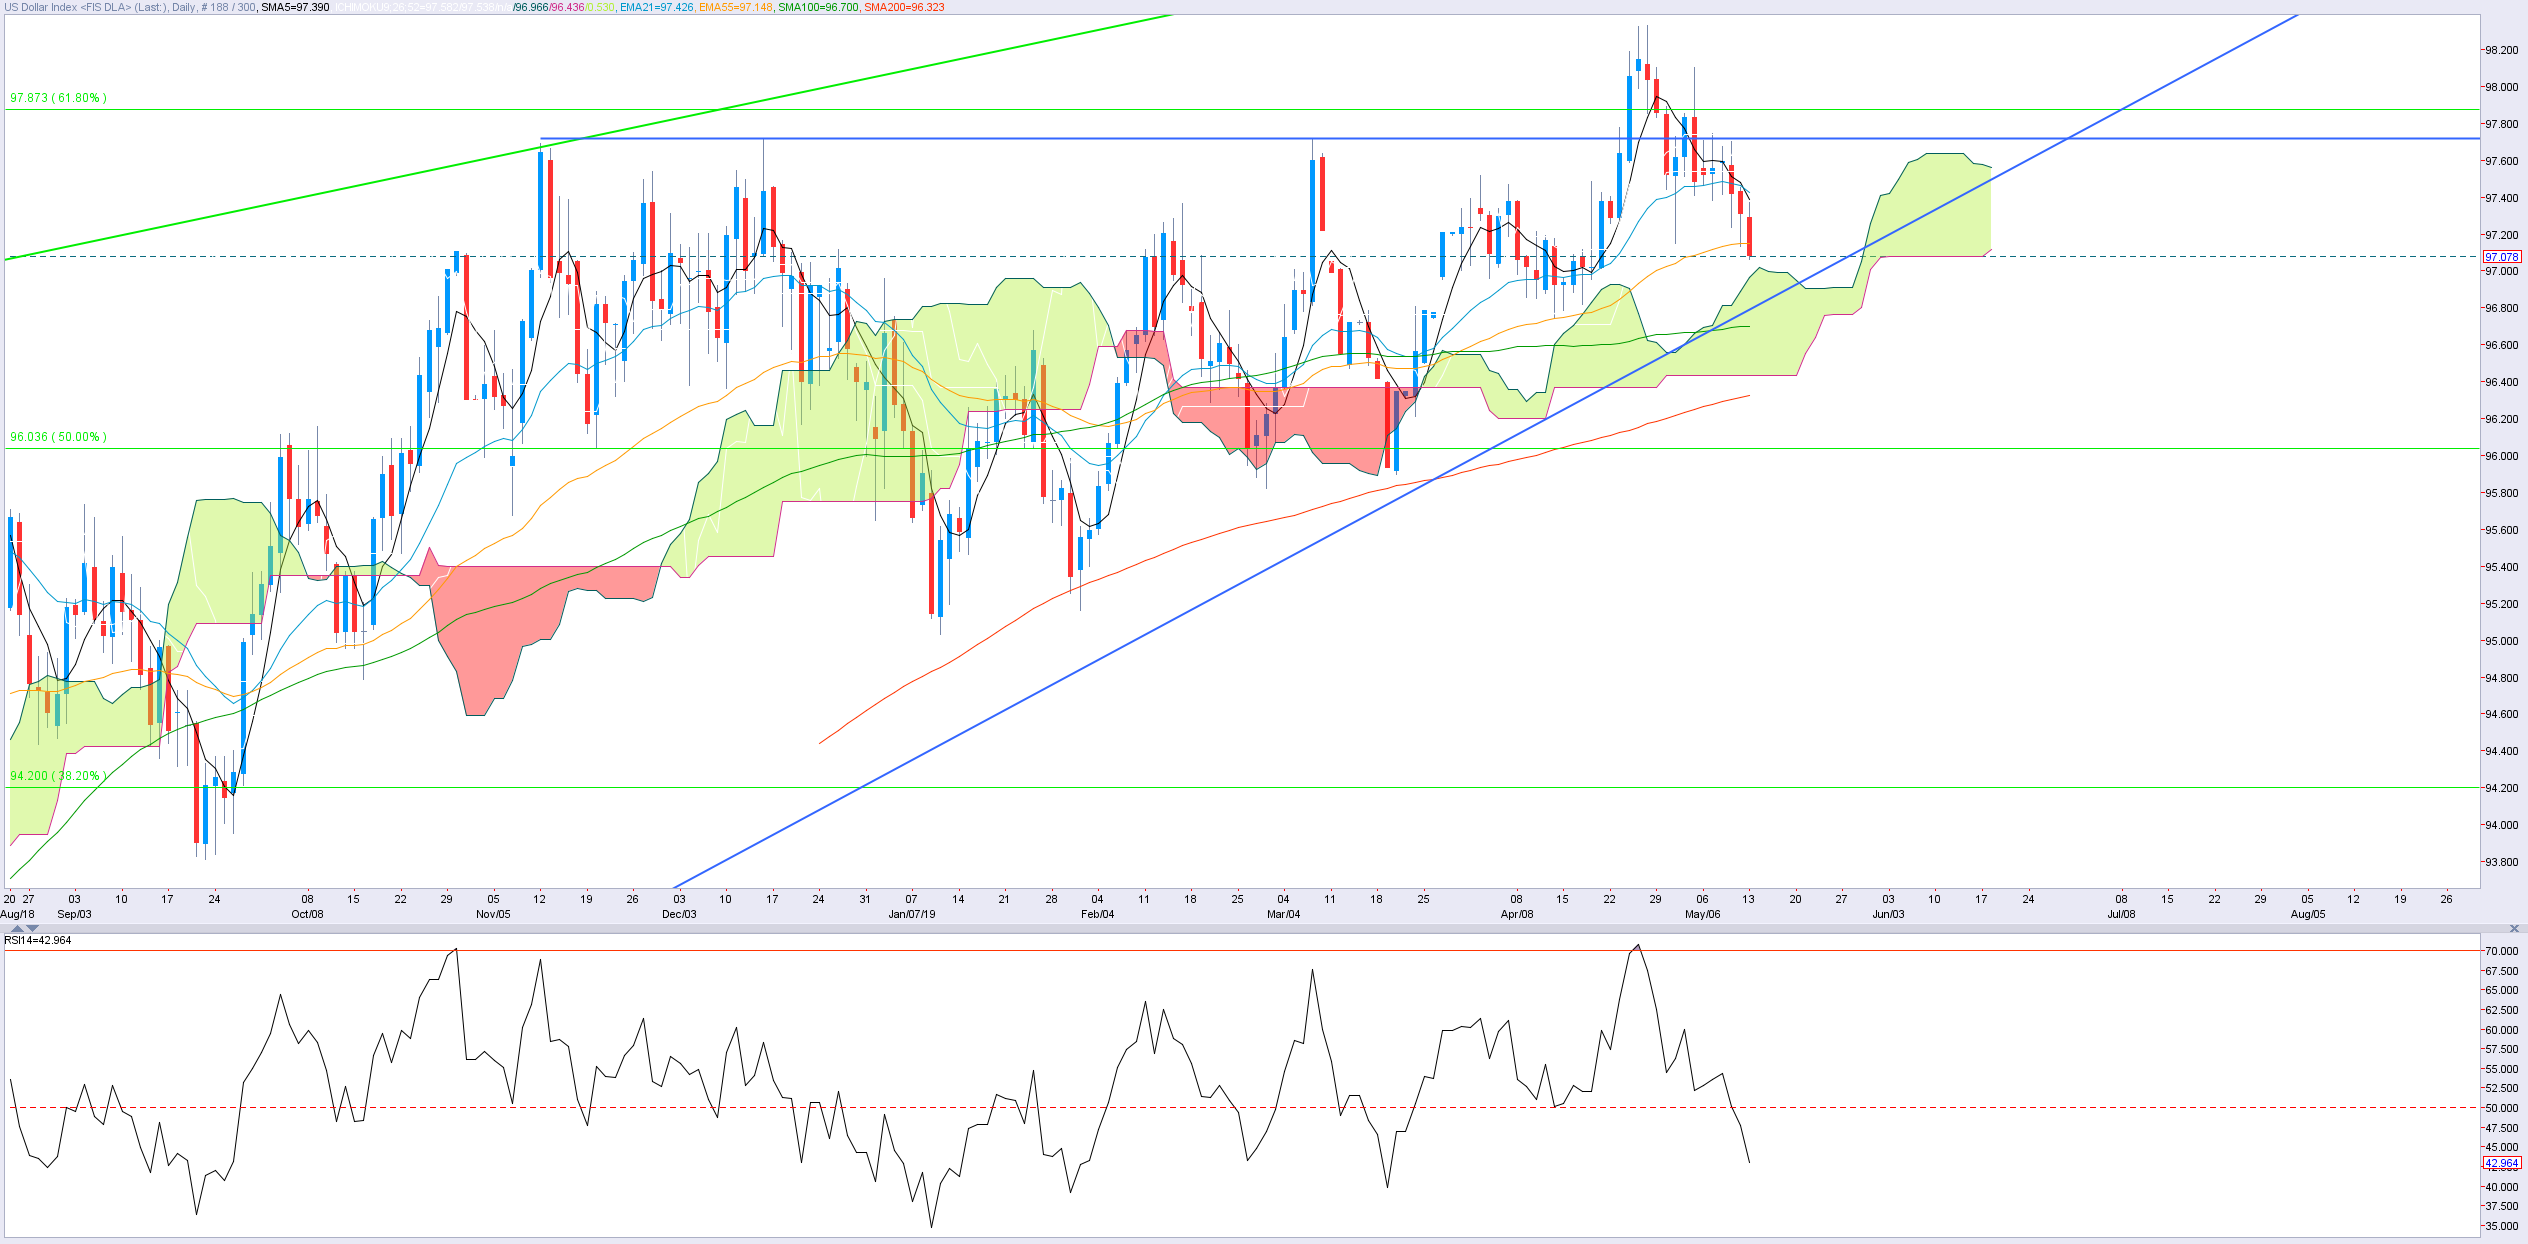 1305dxy